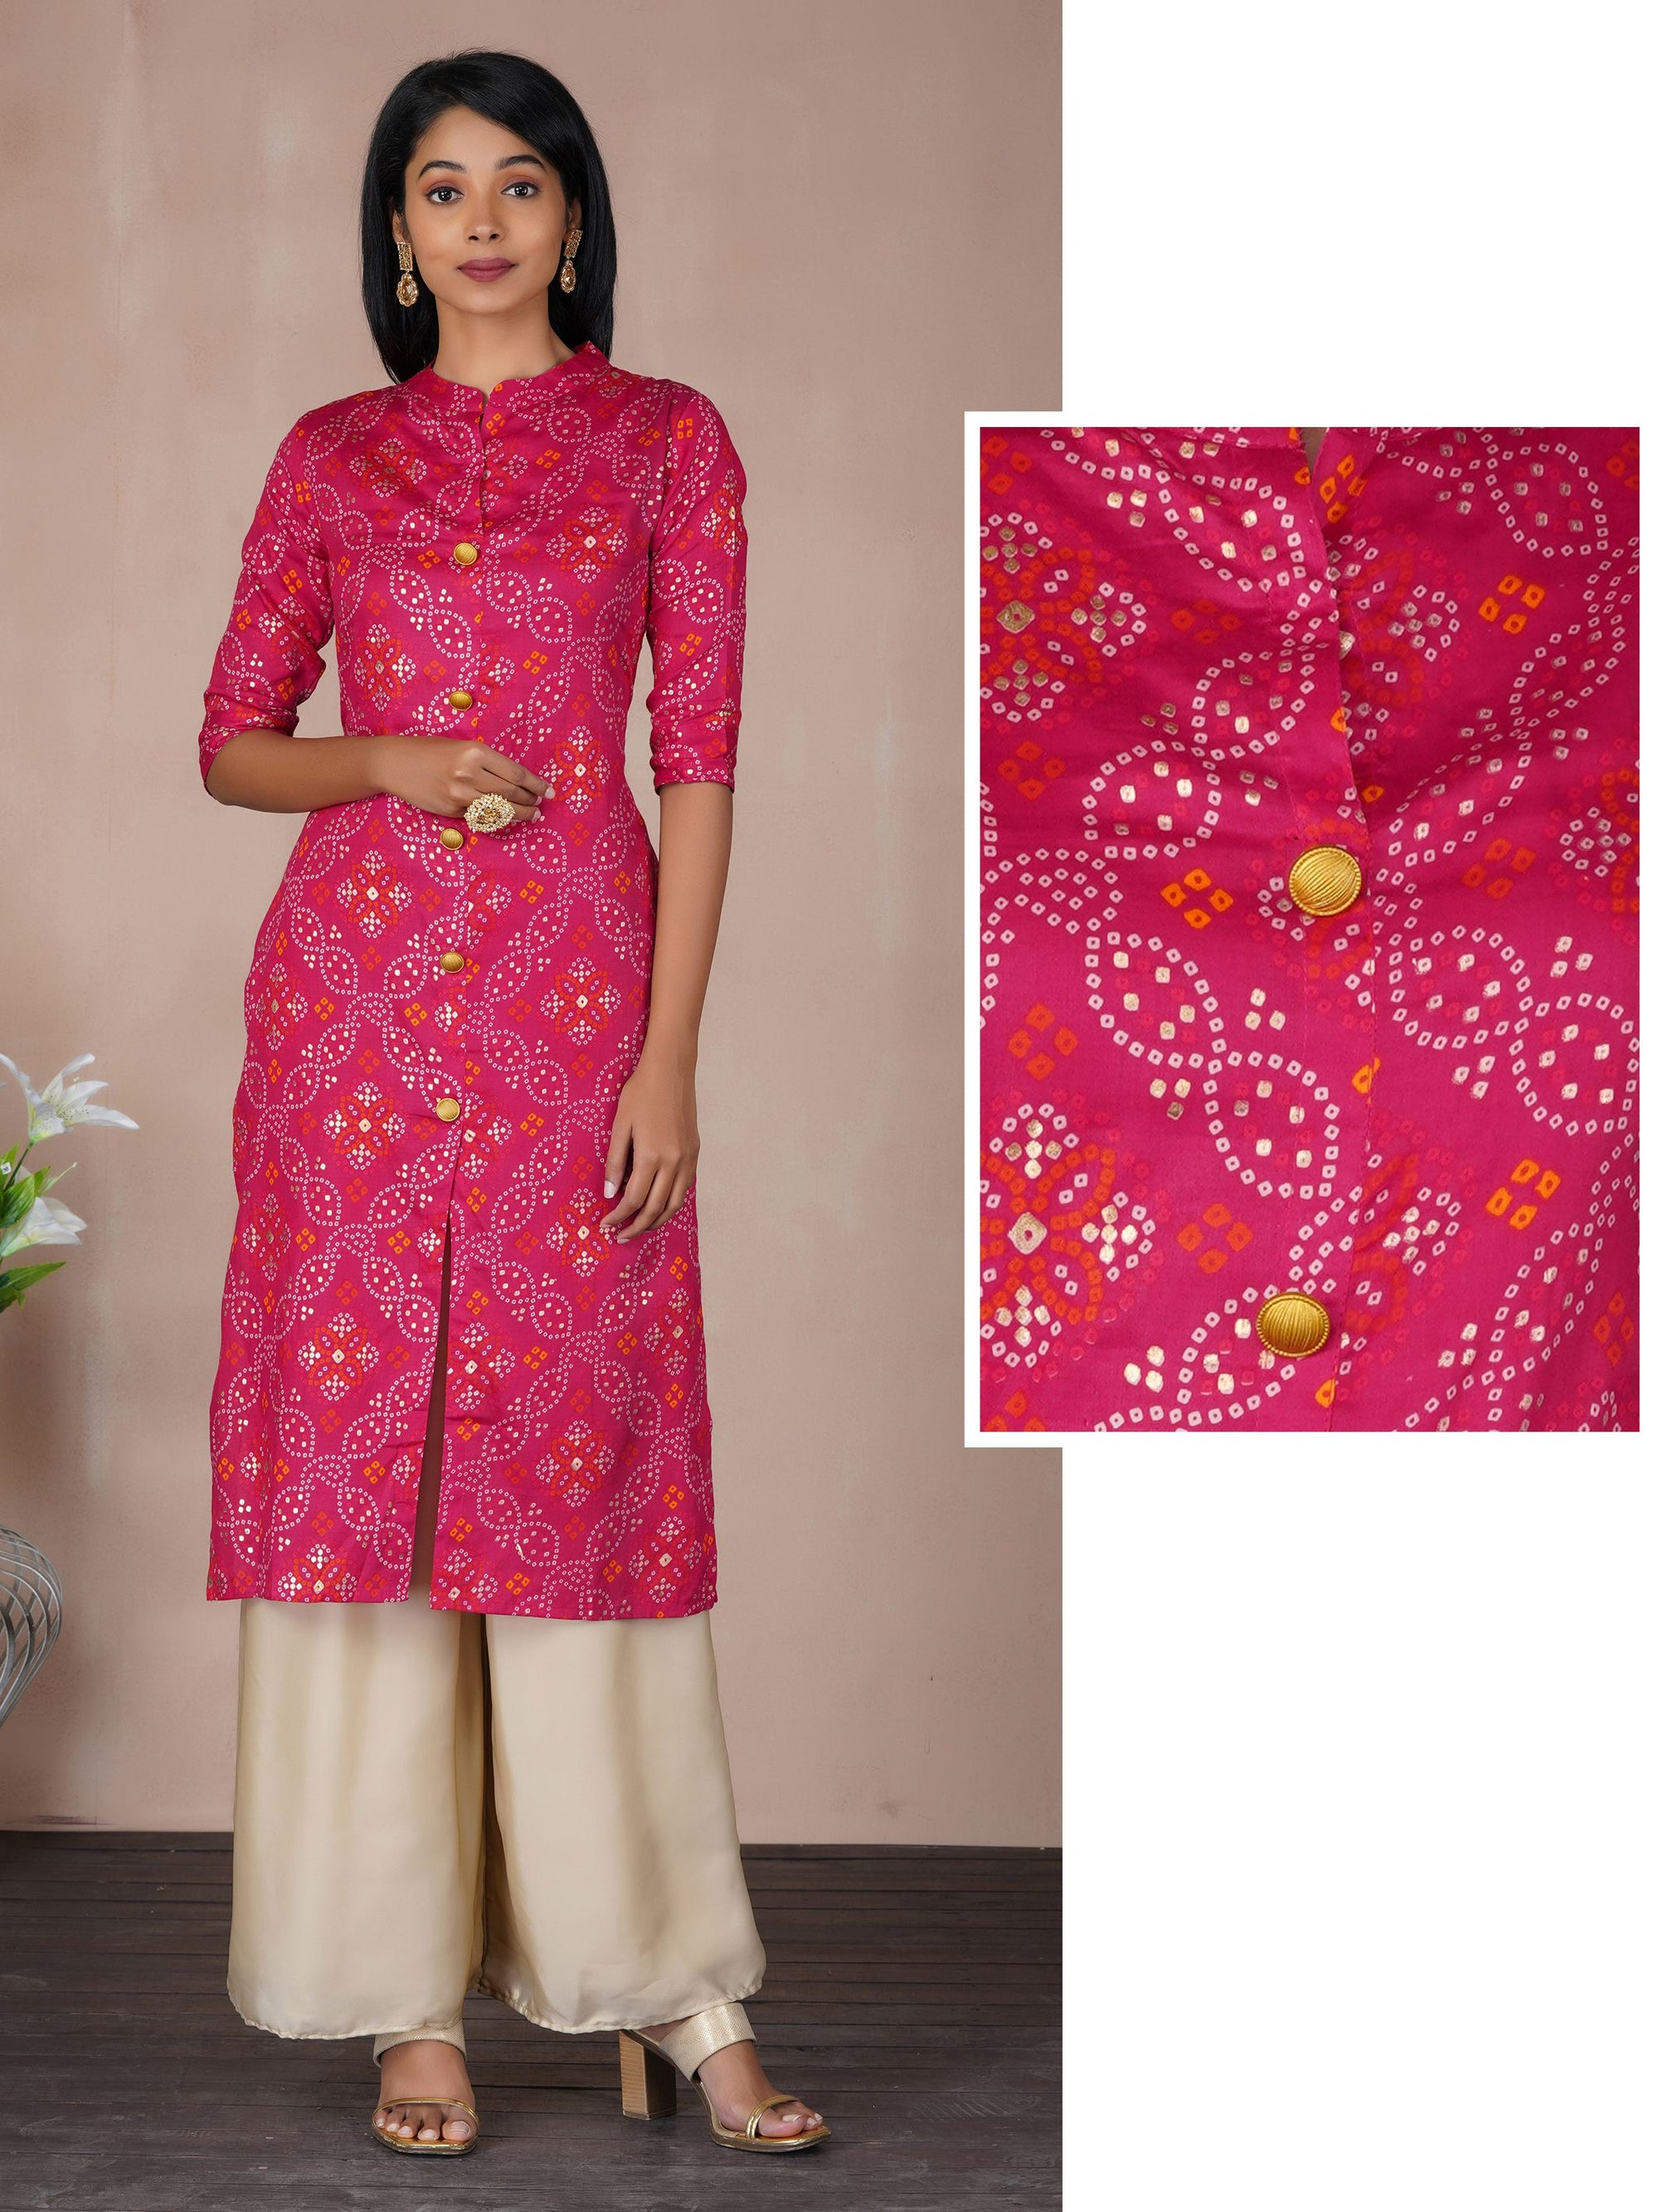 Bandhani Print With Gold Highlighted Kurta - Rani Pink